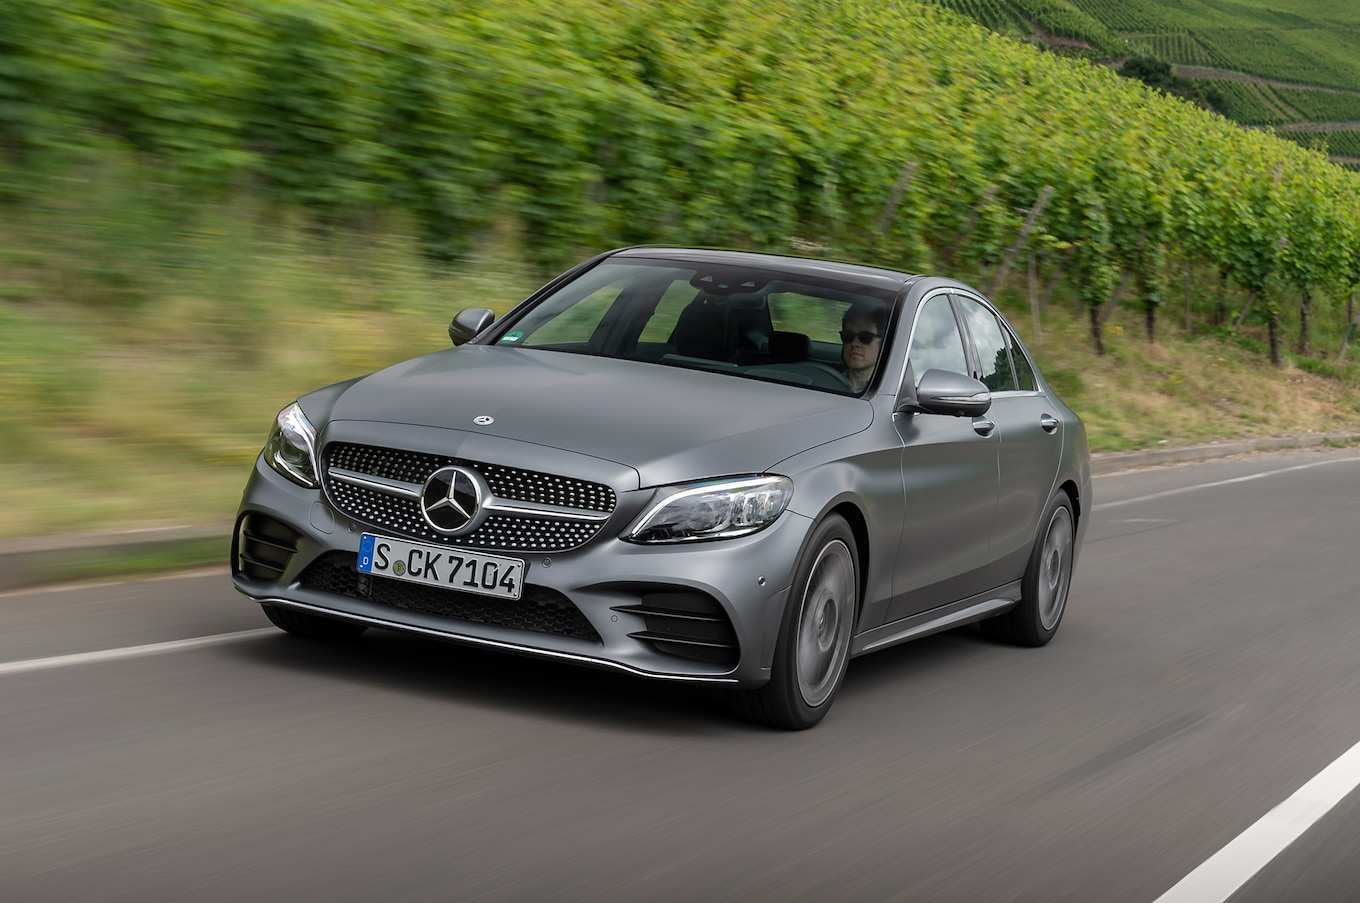 64 Best Review 2019 Mercedes C Class Facelift Price Ratings for 2019 Mercedes C Class Facelift Price